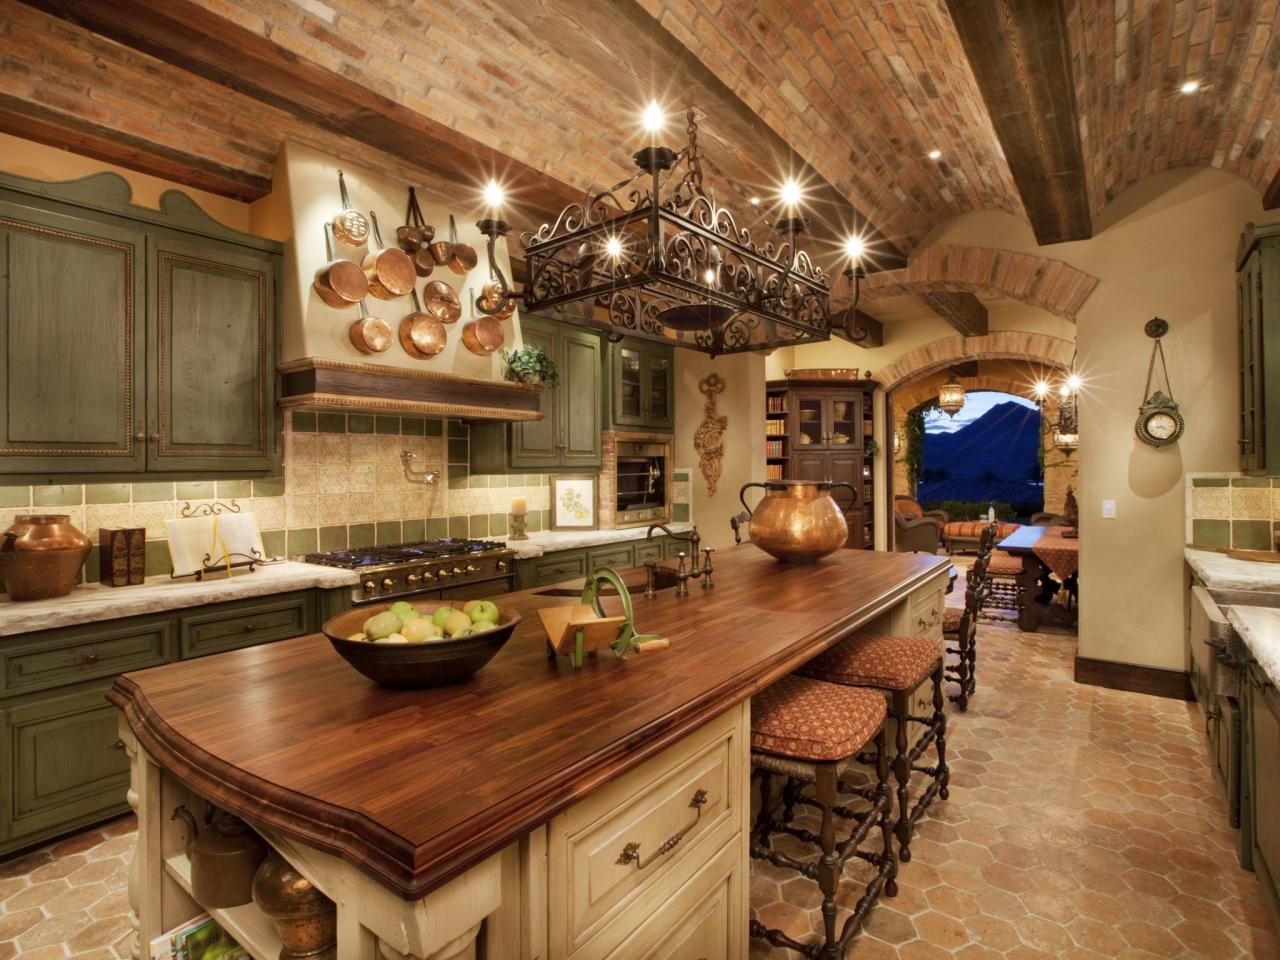 Tuscan Kitchen Design Pictures Ideas Tips Hgtv Kitchen Images Click Arizona Kitchen Cabinets Page Tuscan Kitchen Design Tuscan Kitchen Rustic Kitchen Cabinets